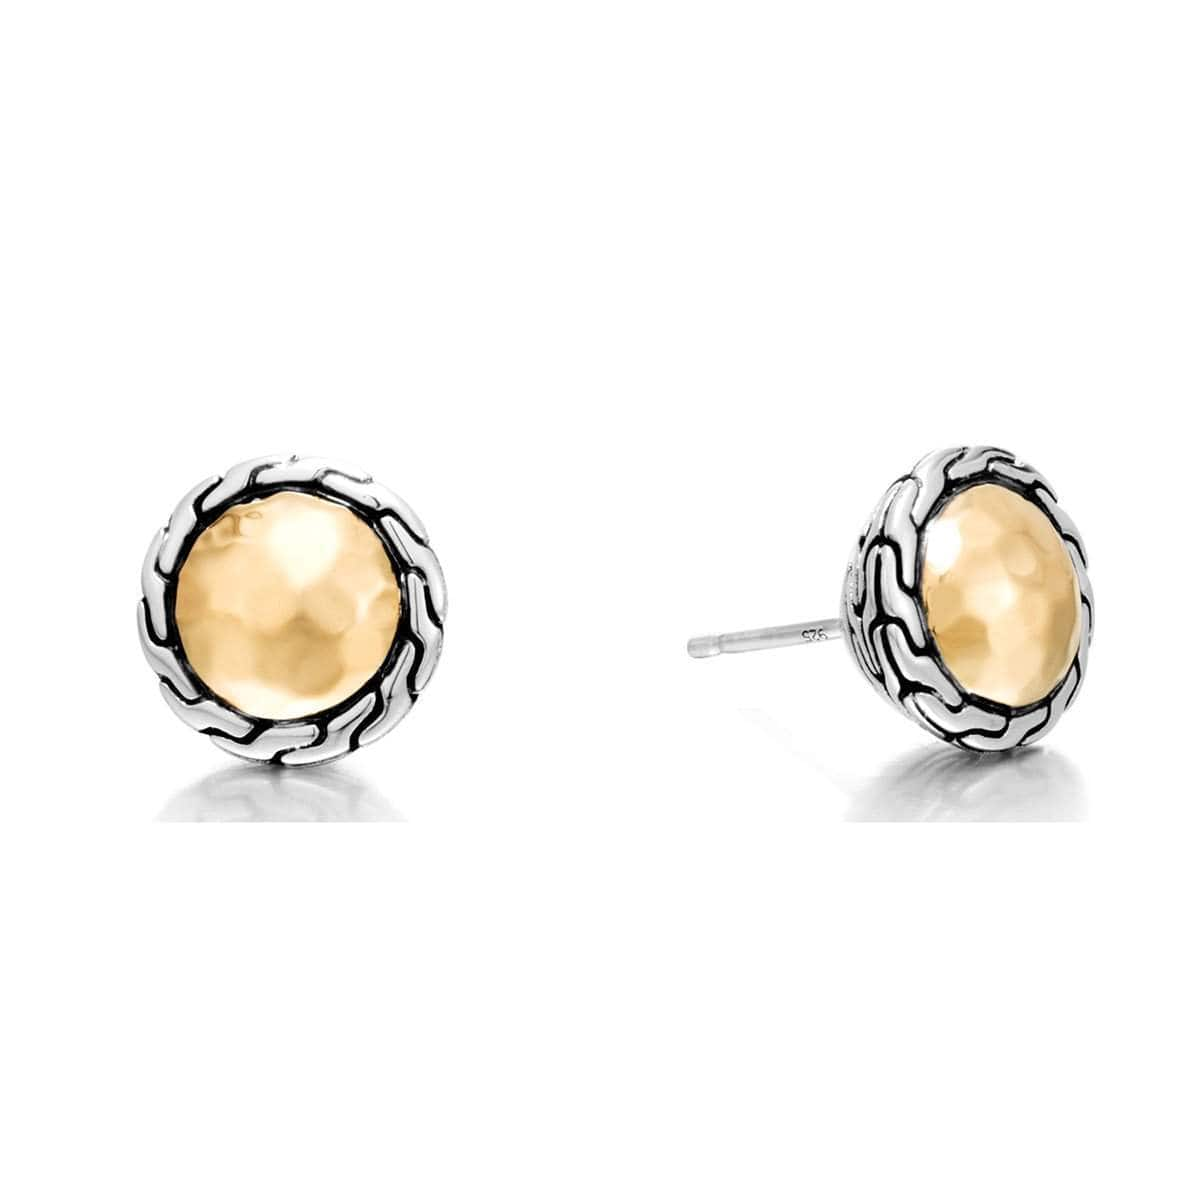 Classic Chain Hammered Gold Silver Stud Earrings - EZ97176-John Hardy-Renee Taylor Gallery